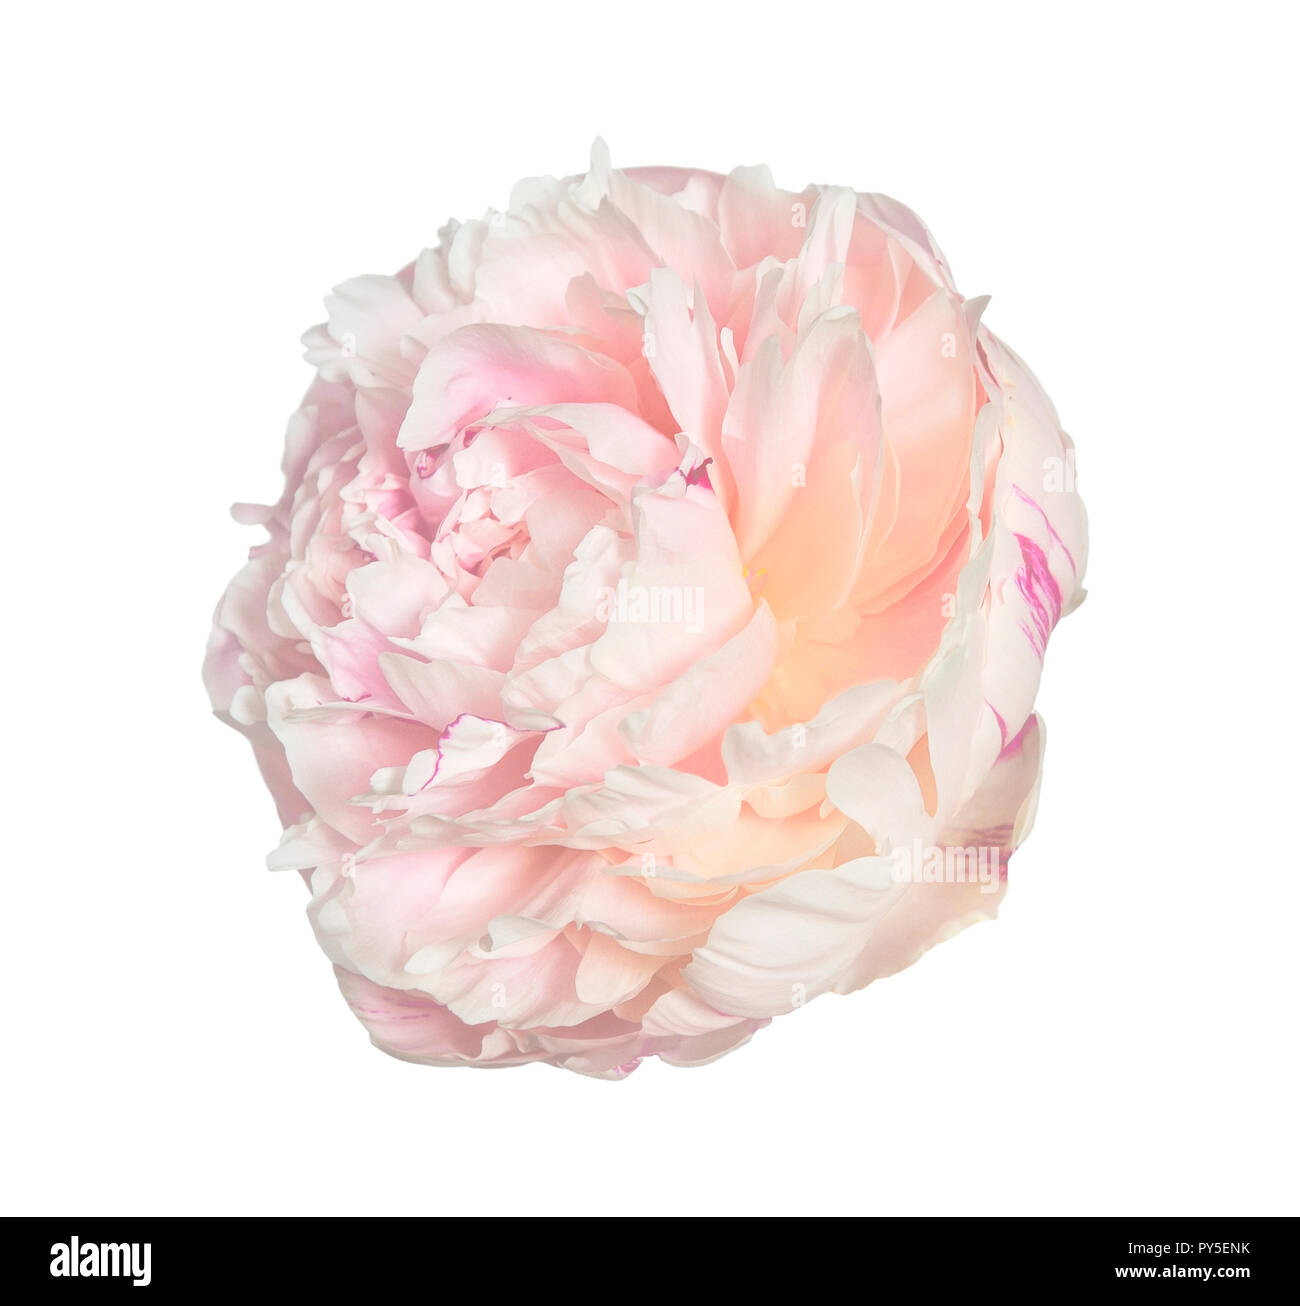 Gentle pink with creamy peony flower with fluffy, frilly petals close up, isolated on white background. Romantic floral pattern - Stock Image